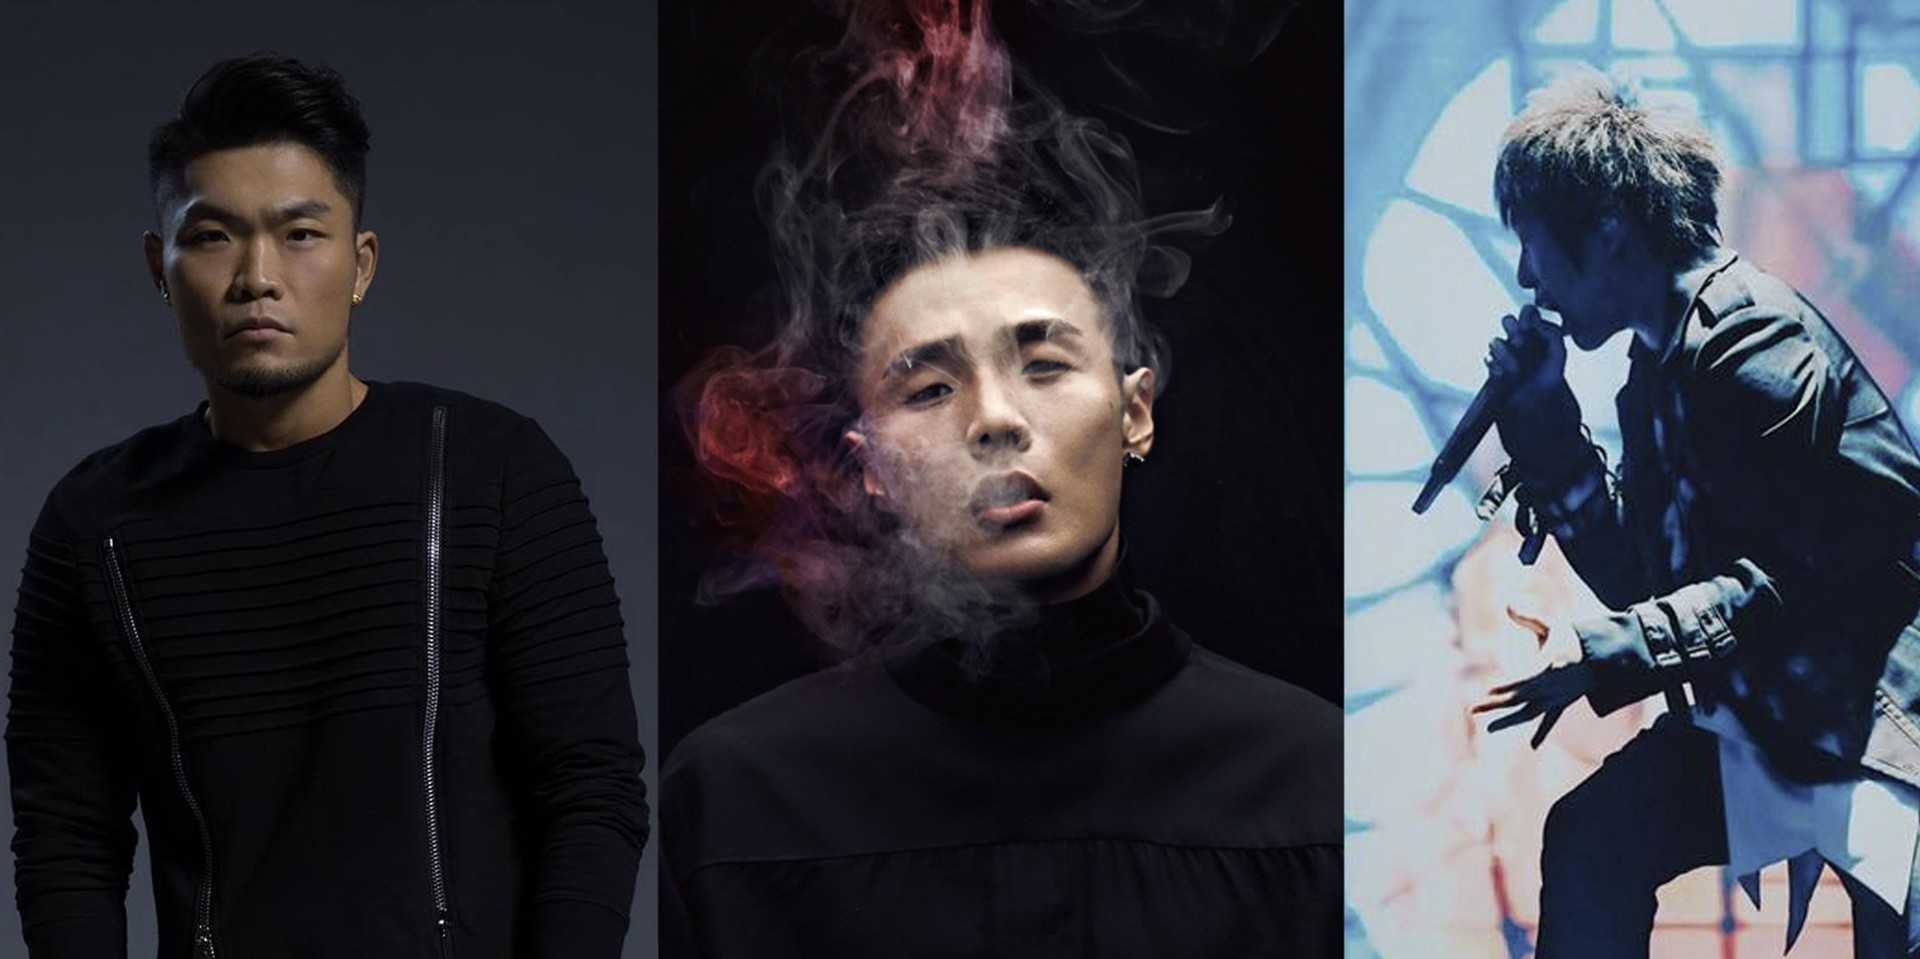 Listen to three new songs by Golden Melody Award winners